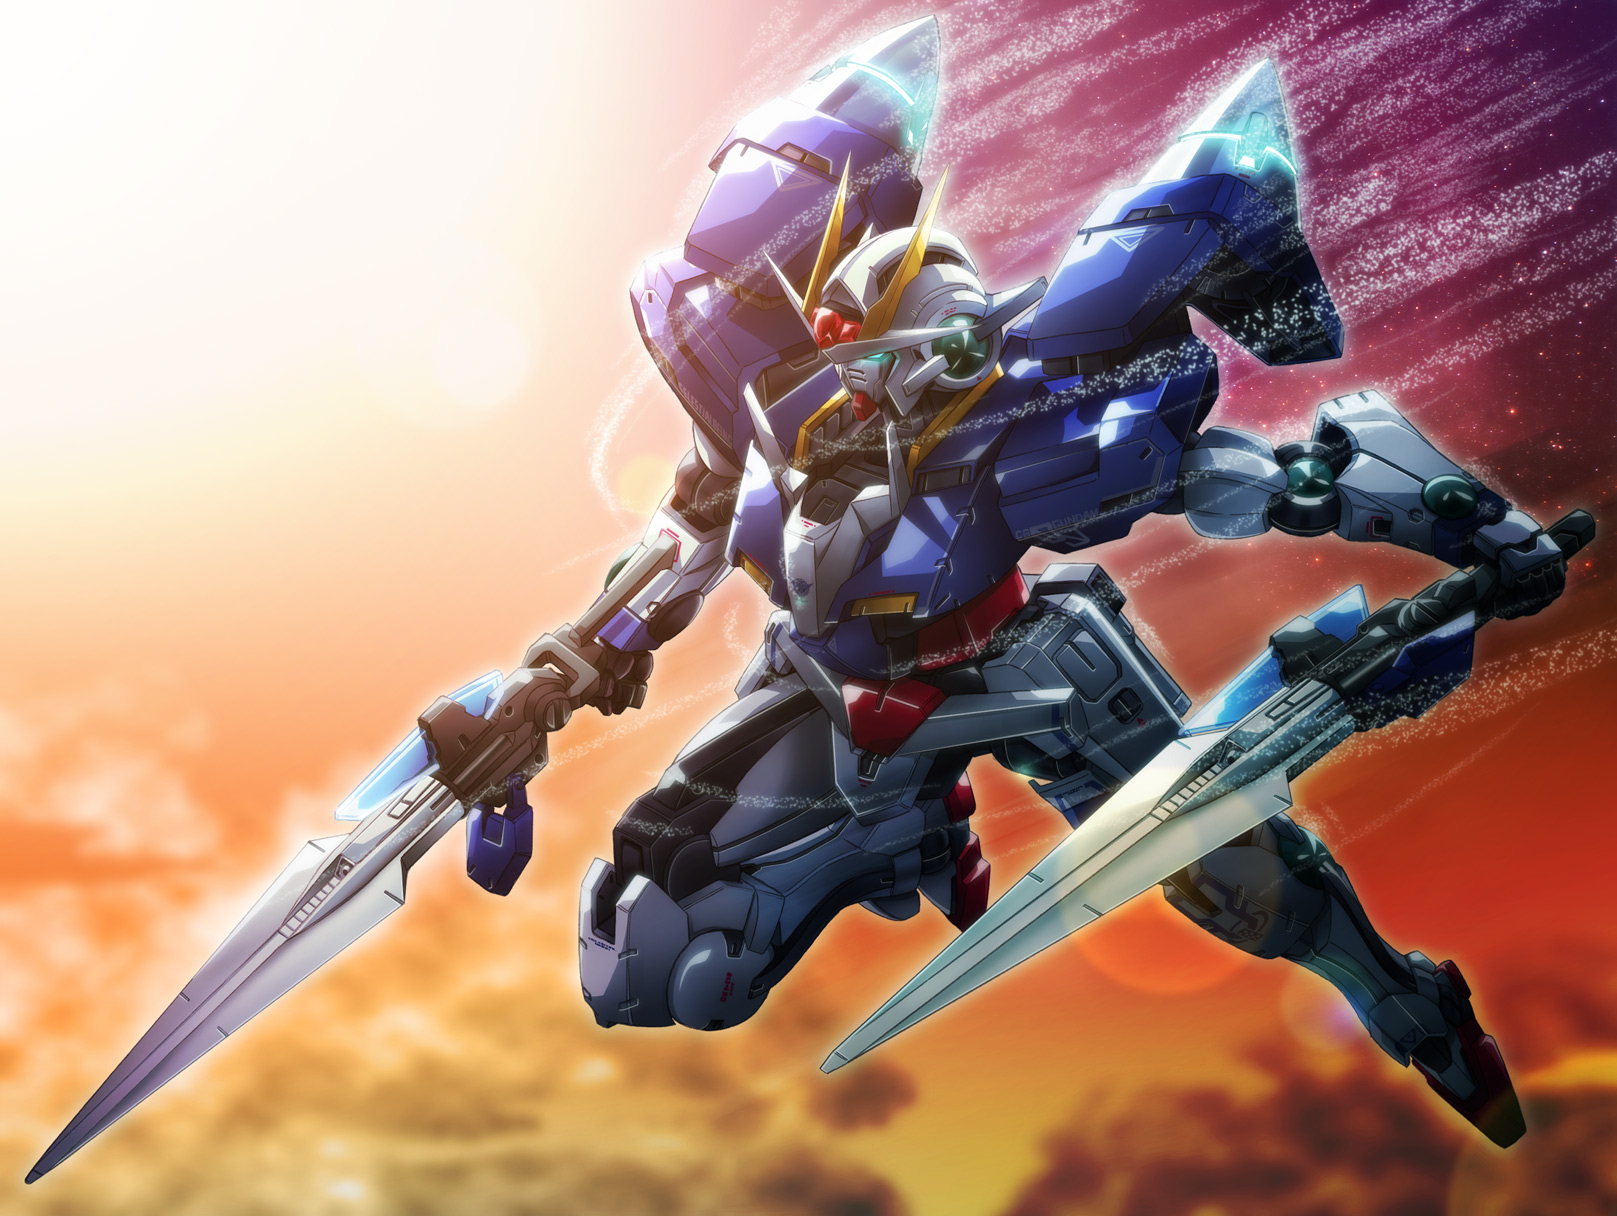 Anime - Gundam  - Transformer Wallpaper